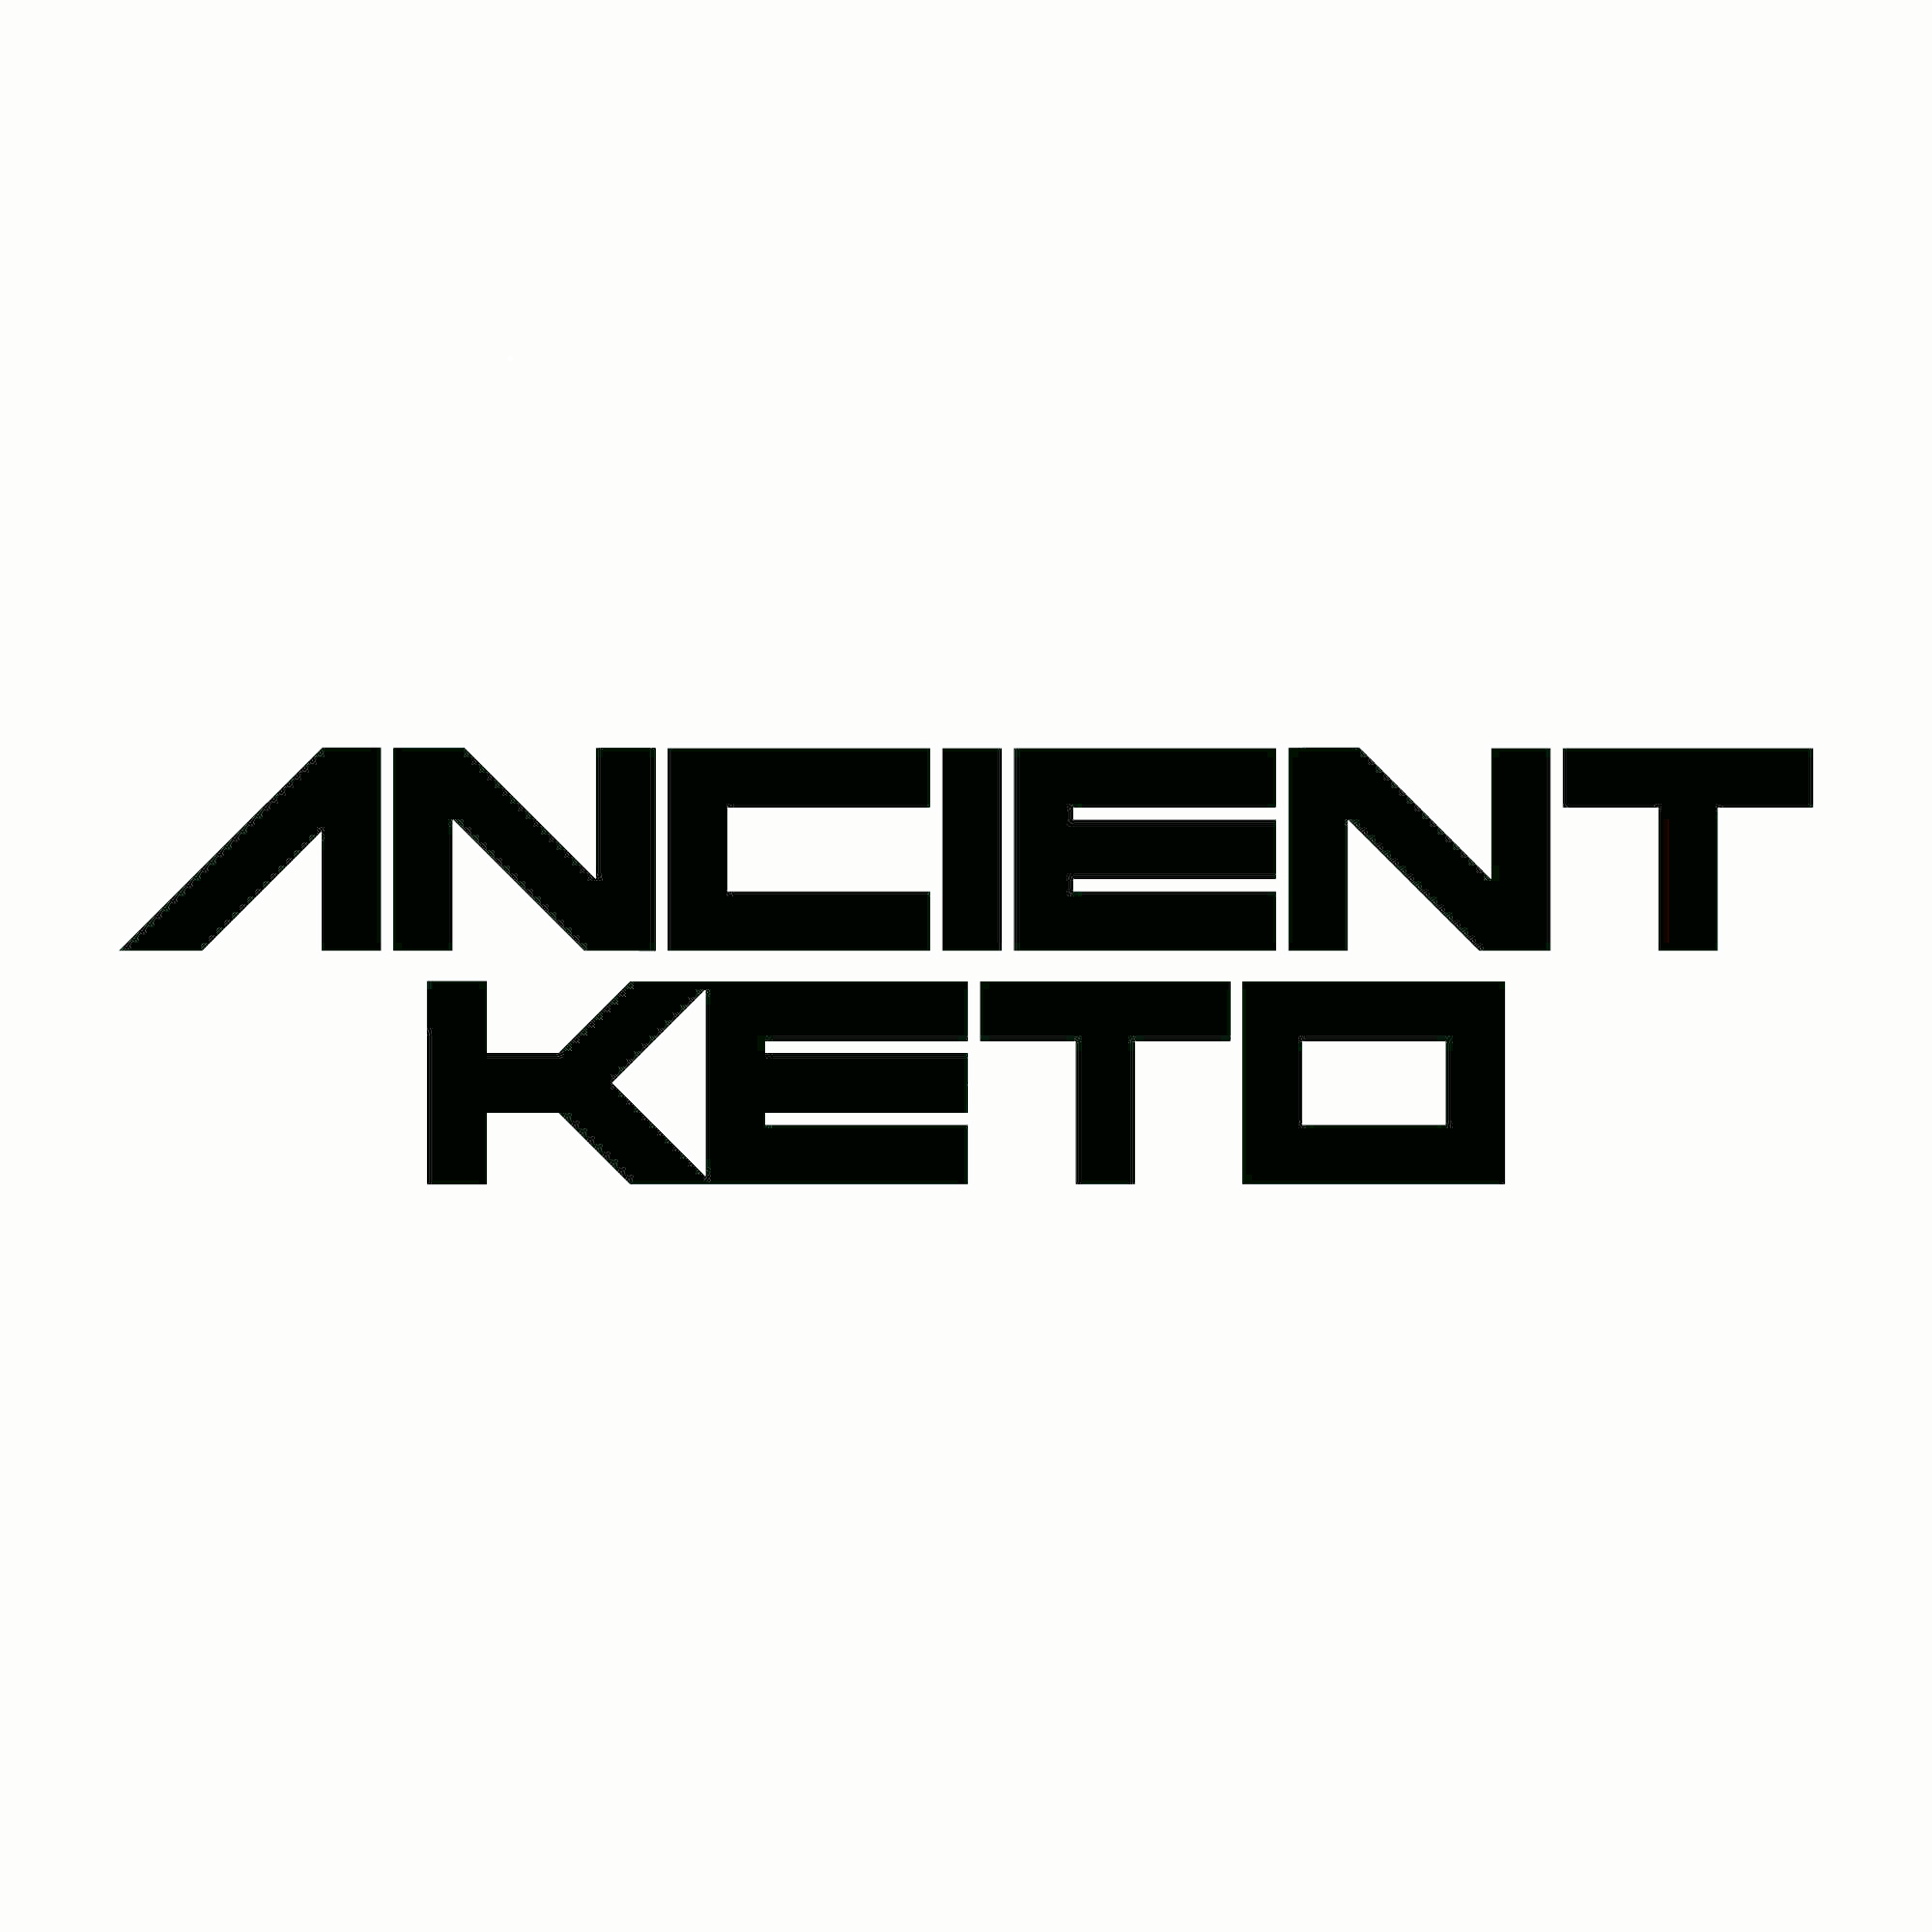 Ancient Keto logo - Keto Certified by the Paleo Foundation